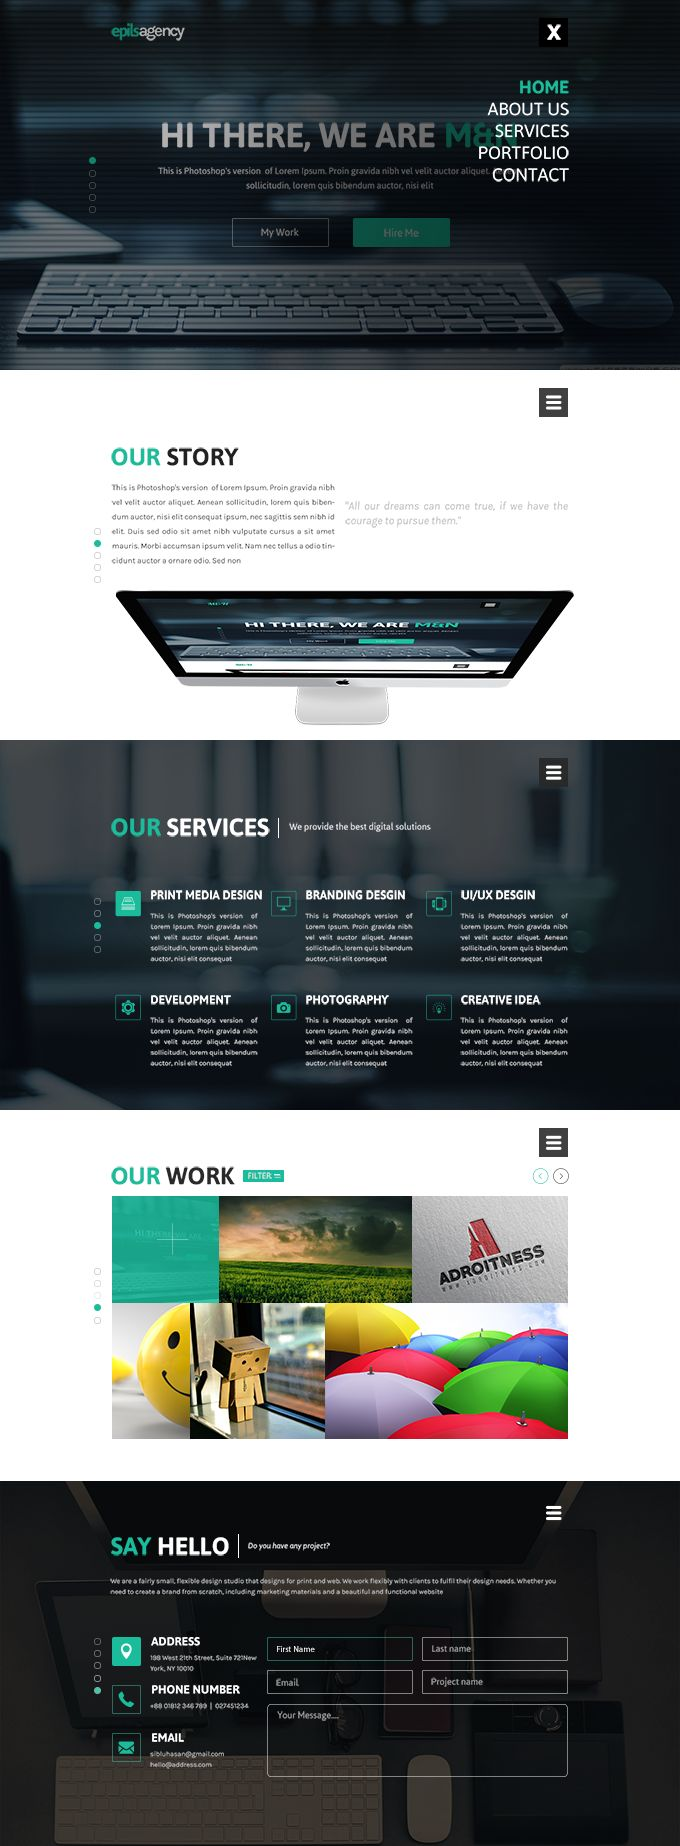 Free Creative Agency Website Template, #Free, #Layout, #PSD, #Resource, #Template, #Web #Design